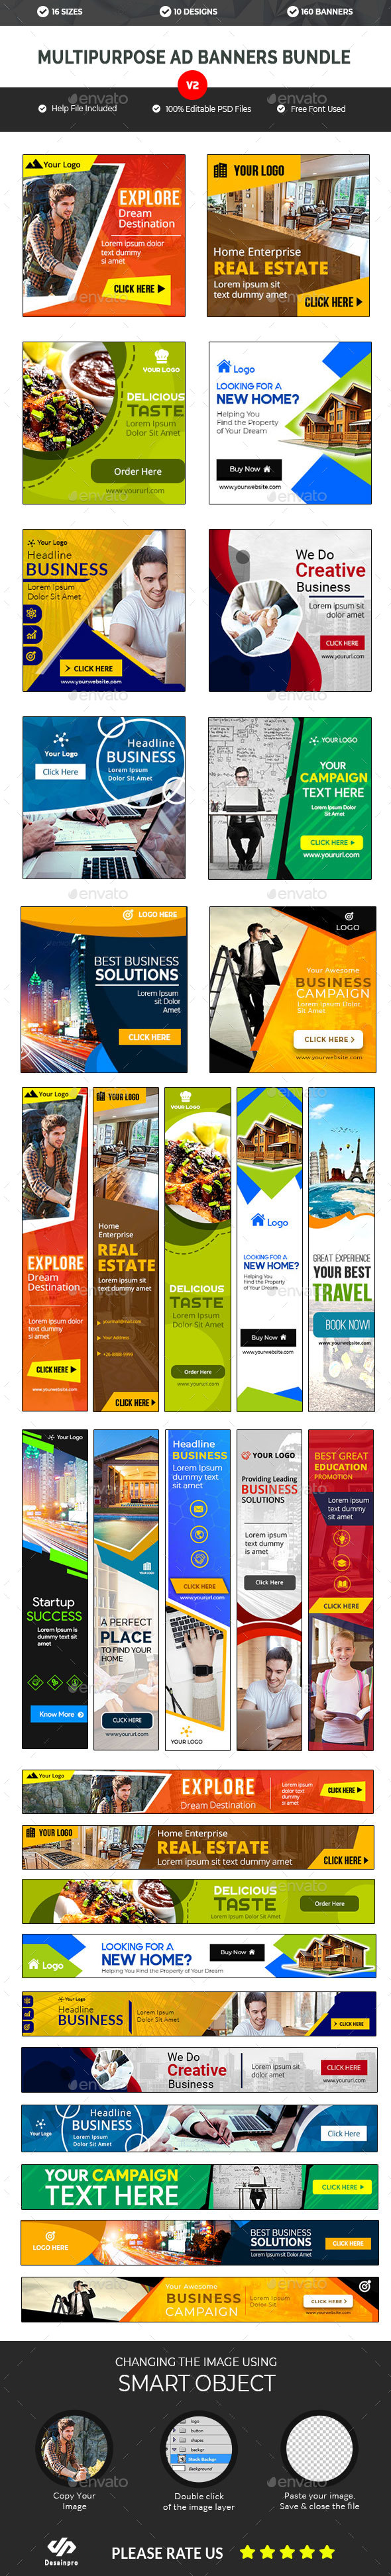 Multipurpose Banners Bundle V2 - 10 Sets - 160 Banners - AR - Banners & Ads Web Elements